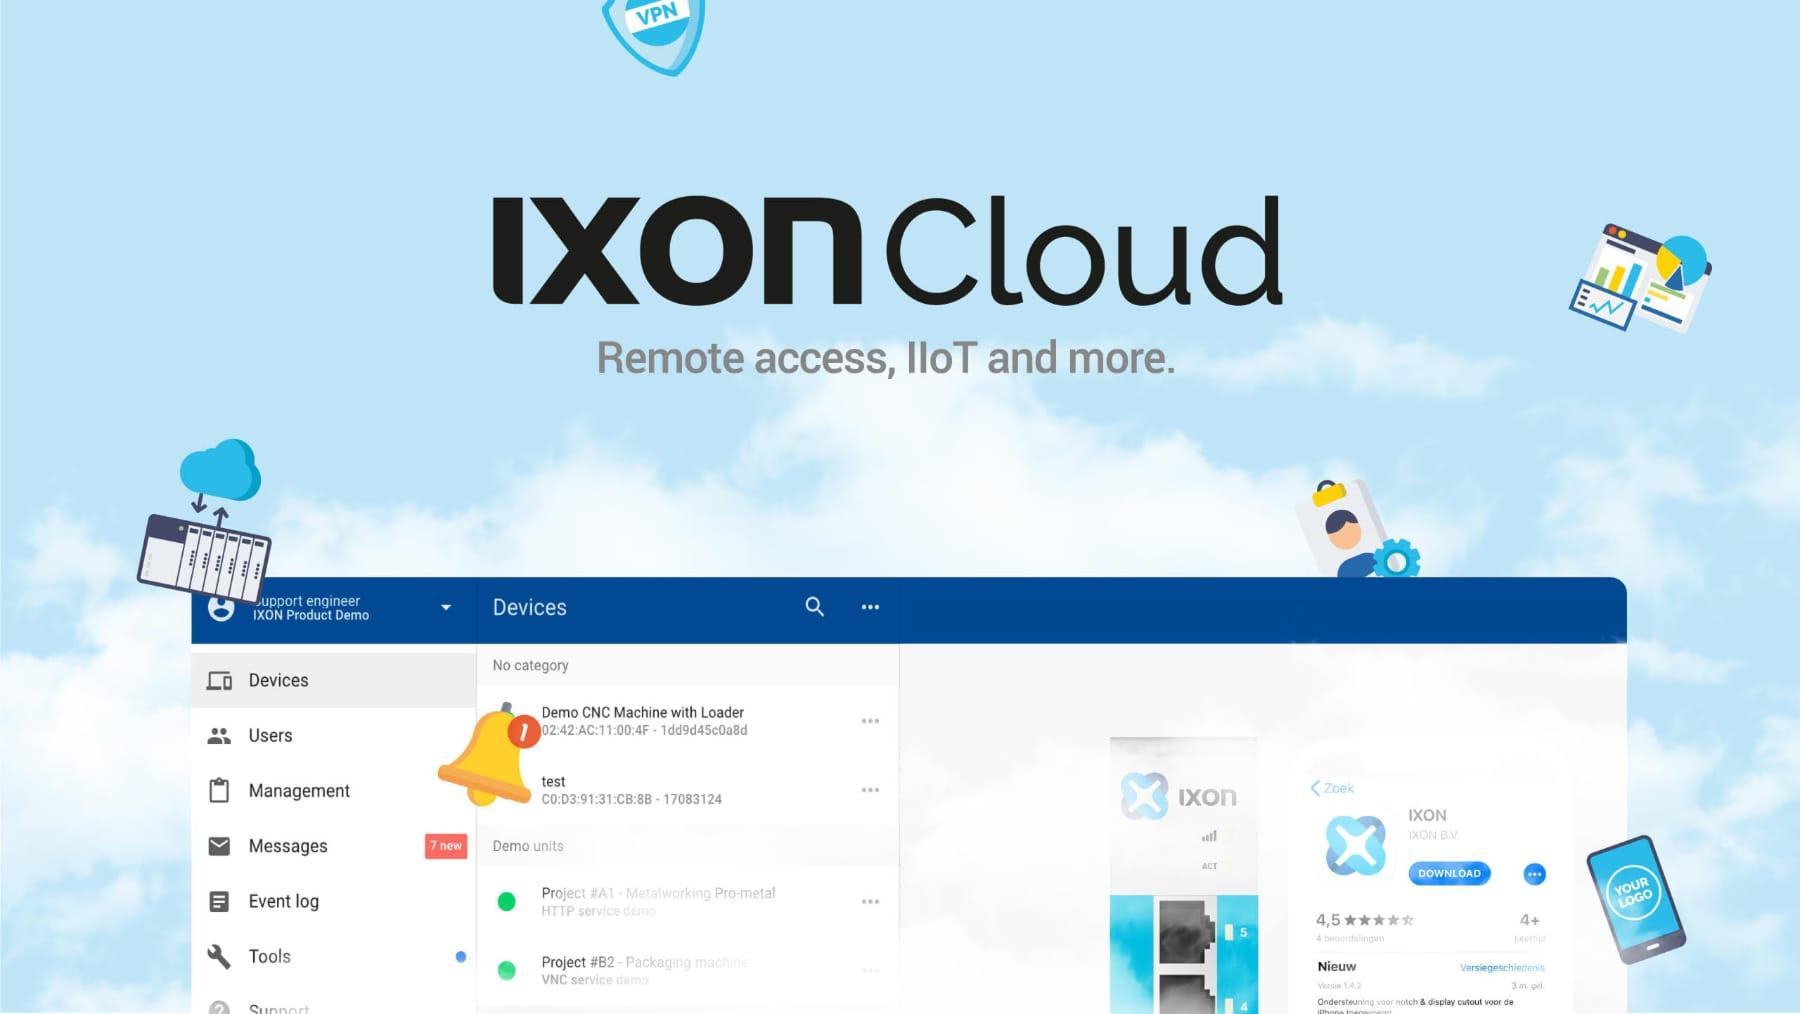 IXON Cloud - Remote Access, IoT and more..